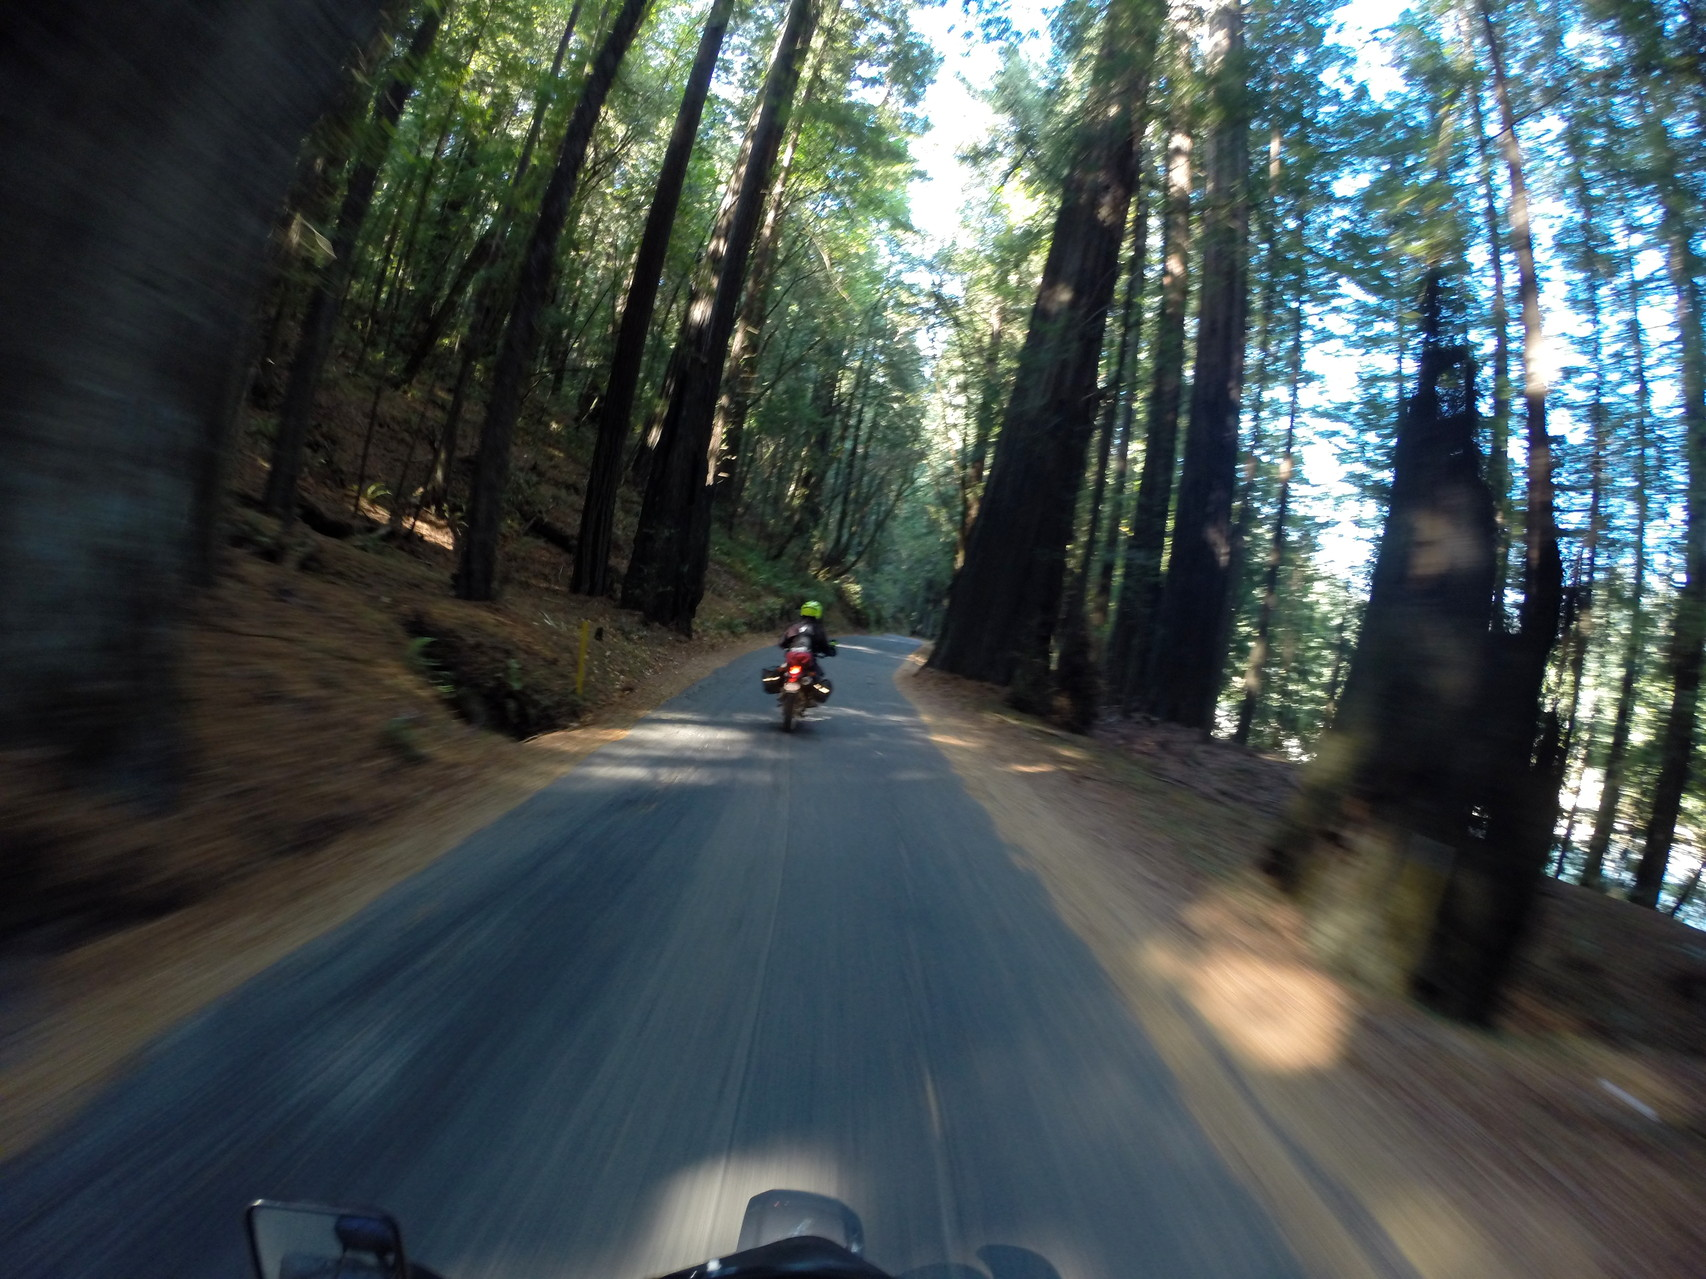 Met back up with the Avenue of the Giants north of Weott